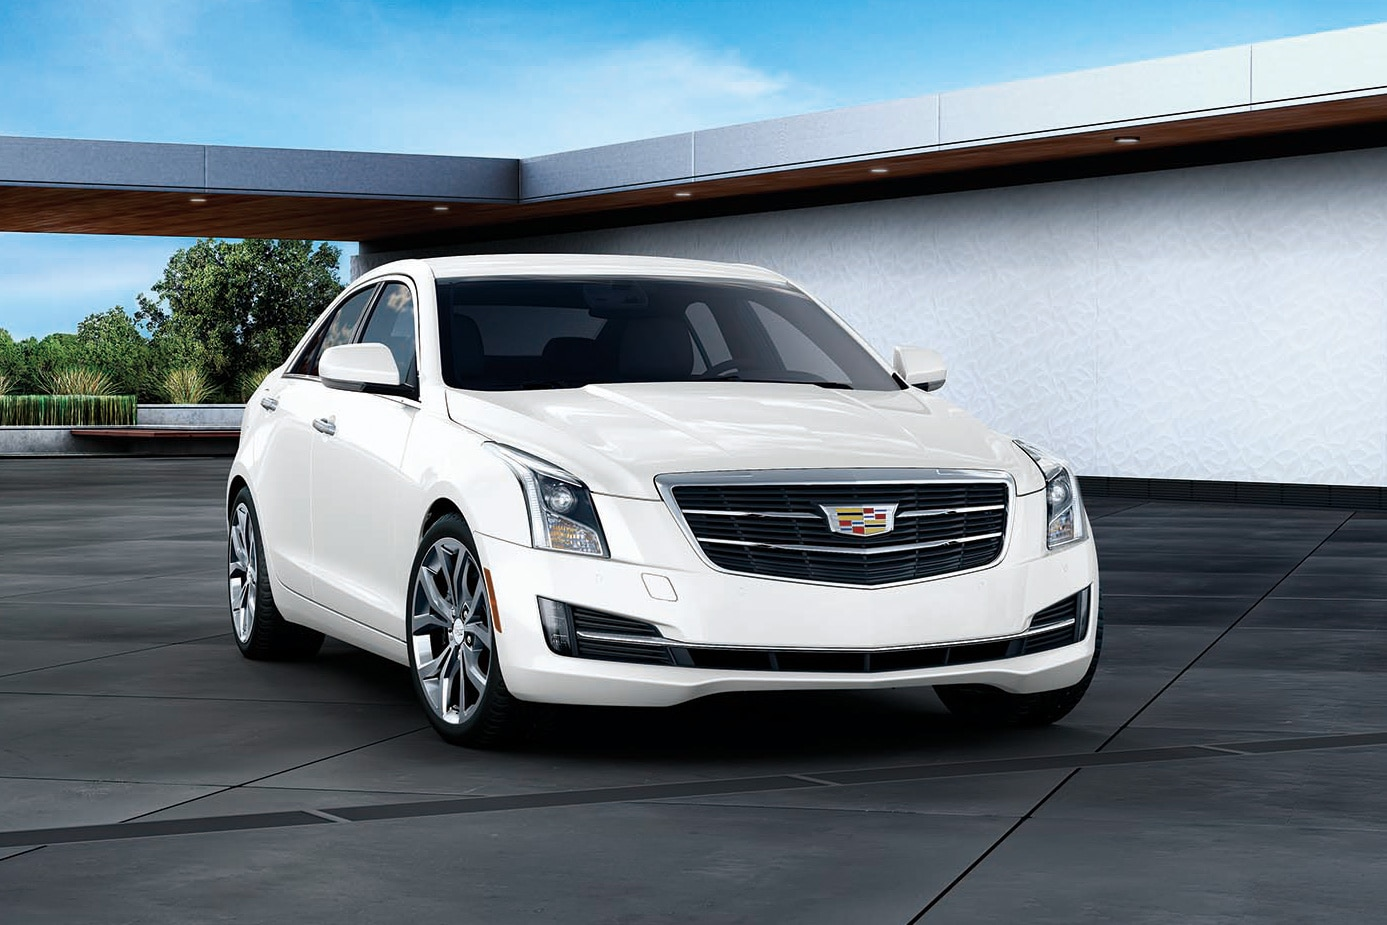 """Cadillac Ats 2.0 T >> Cadillac Announces Japan-Only """"White Edition"""" for 2017 ATS ..."""